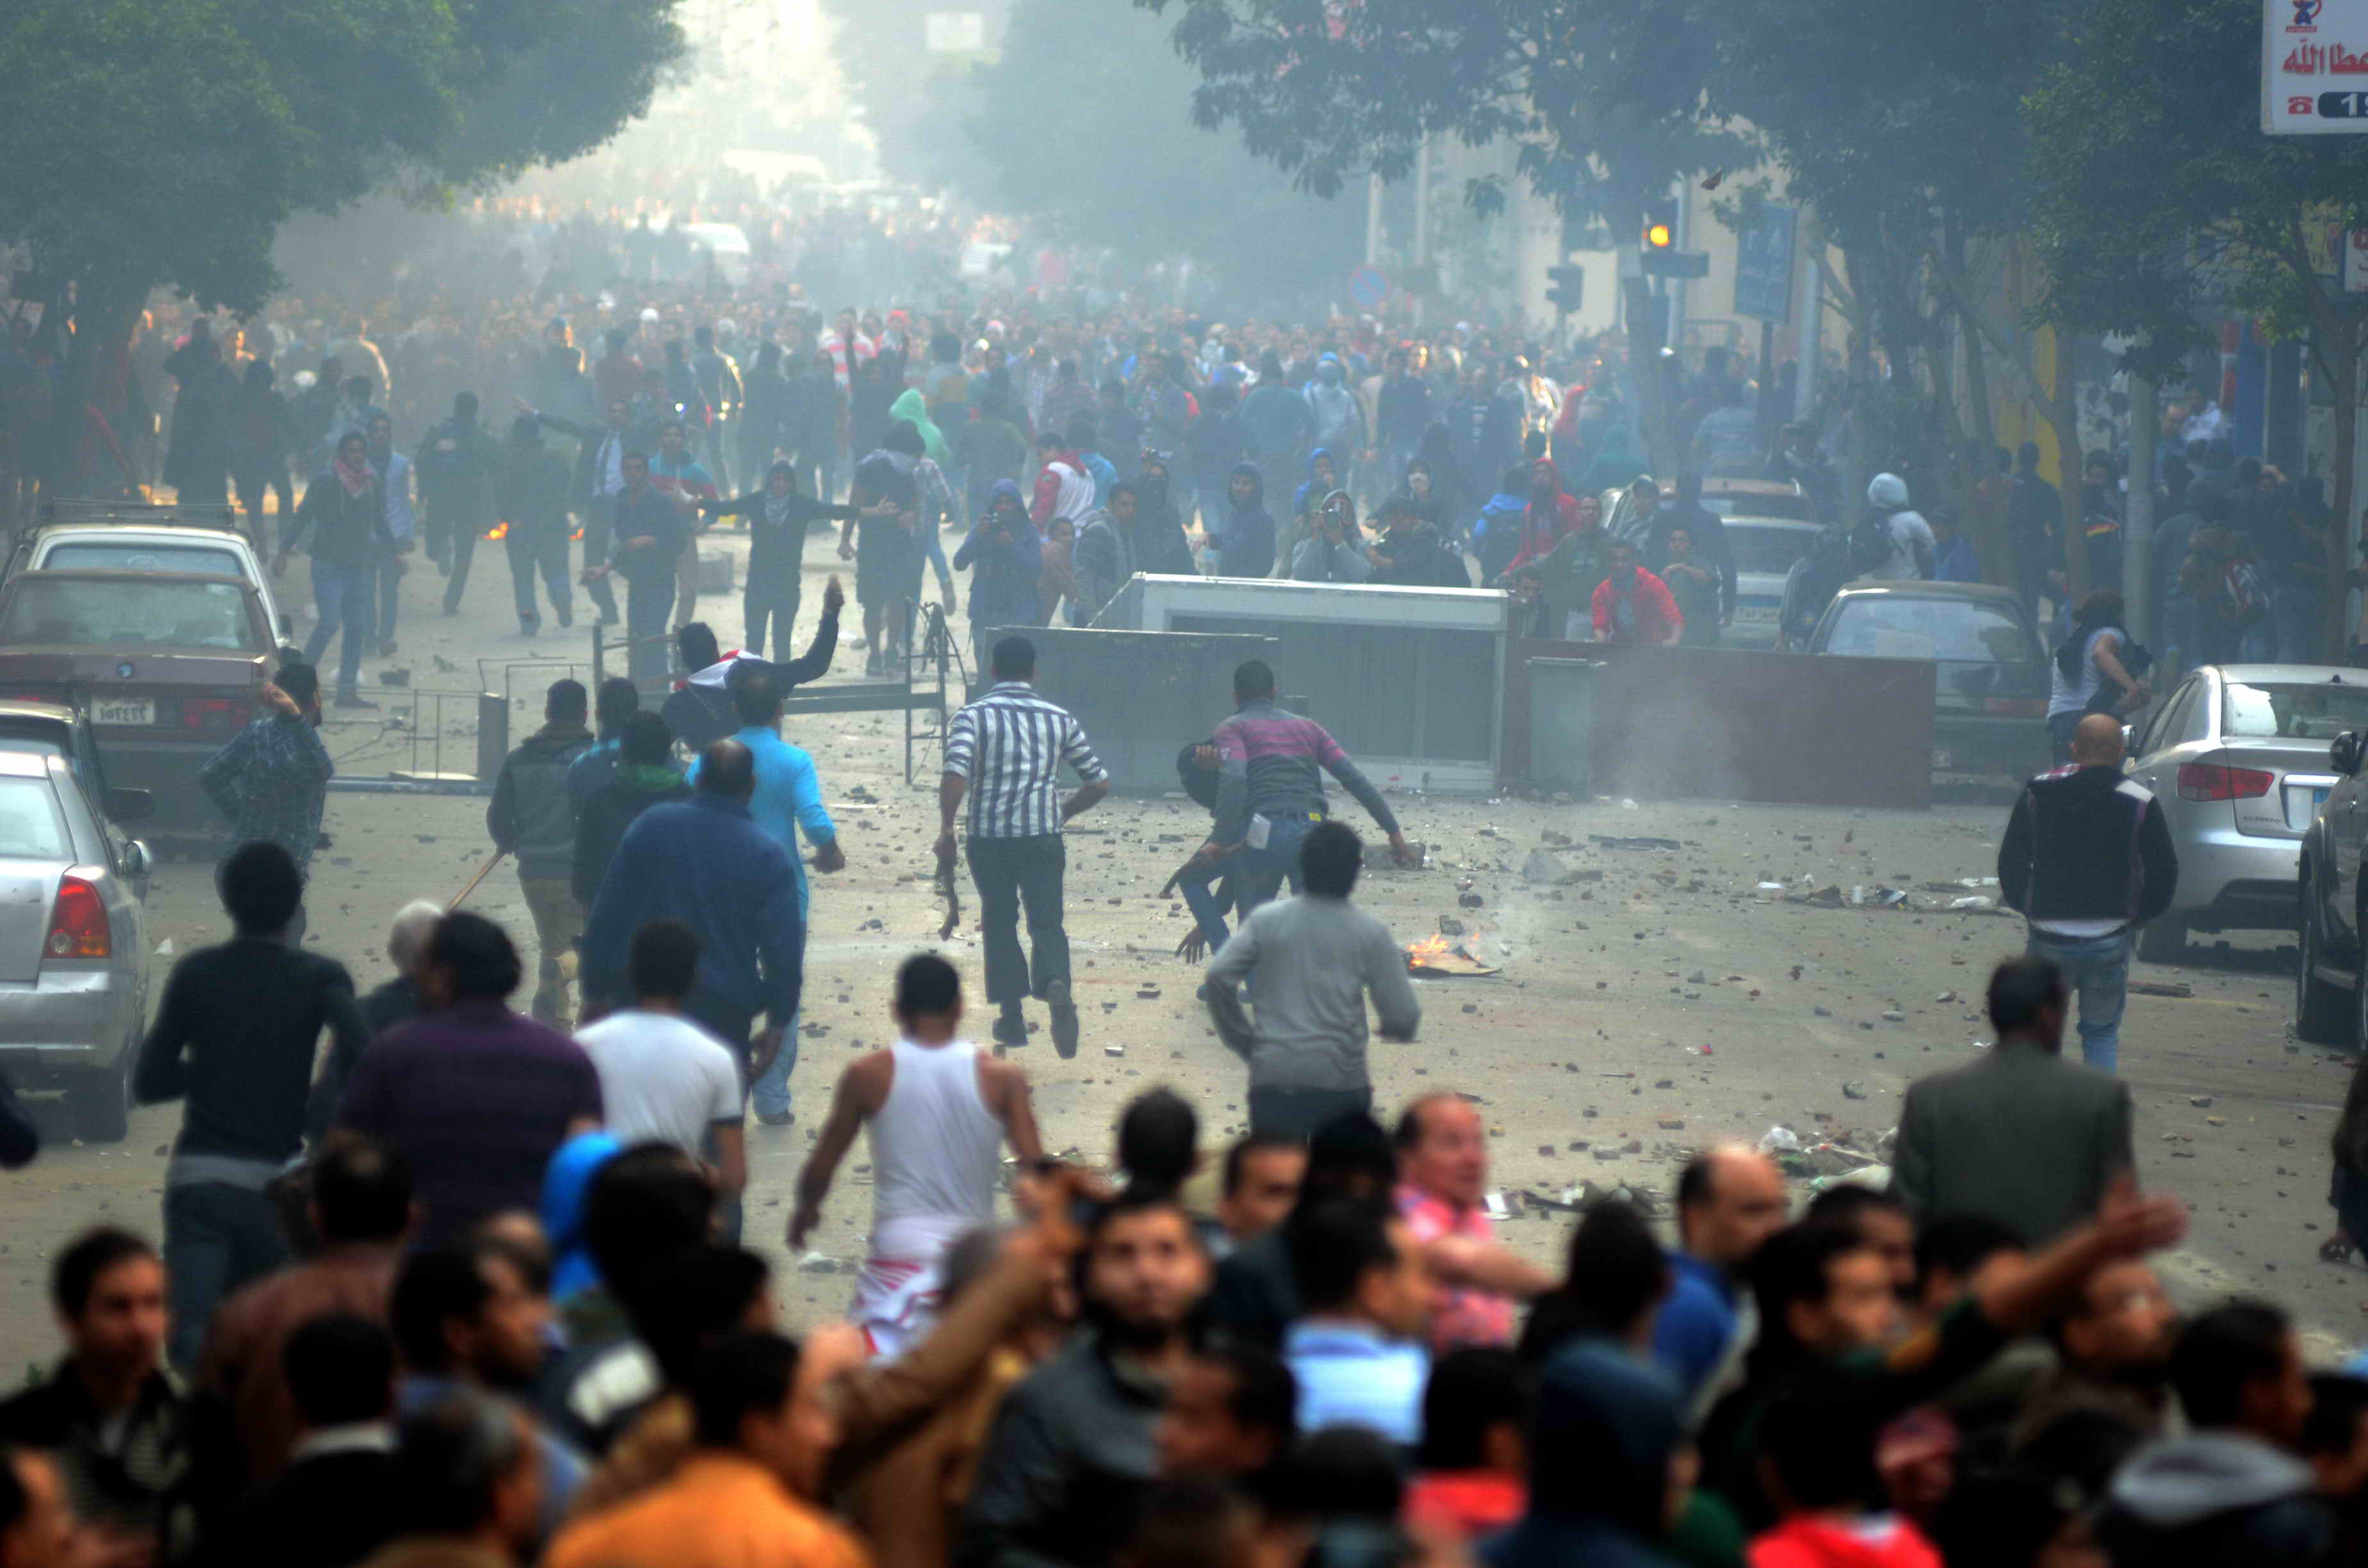 The third anniversary of the 25 January uprising was marred by violence in downtown Cairo and other parts of the country (Photo by Ahmed Al-Malky)